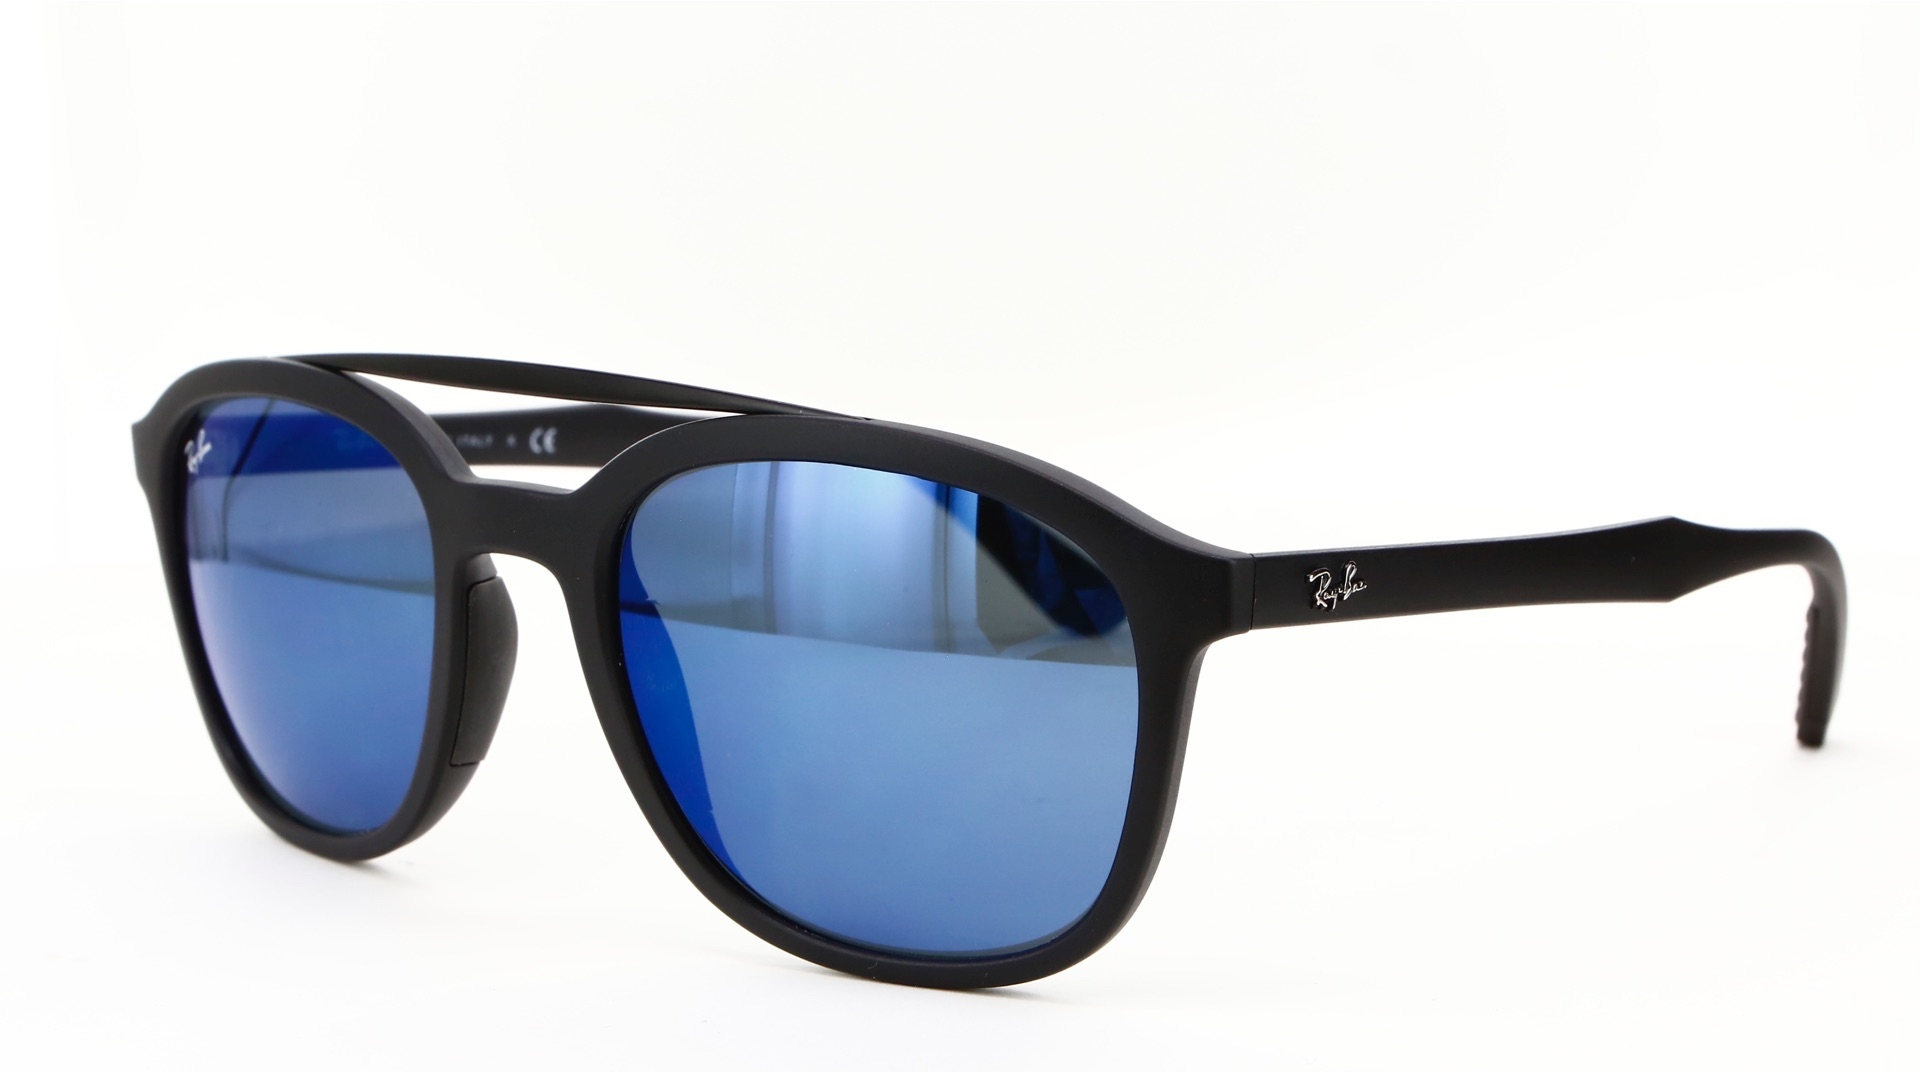 Ray-Ban - ref: 79104